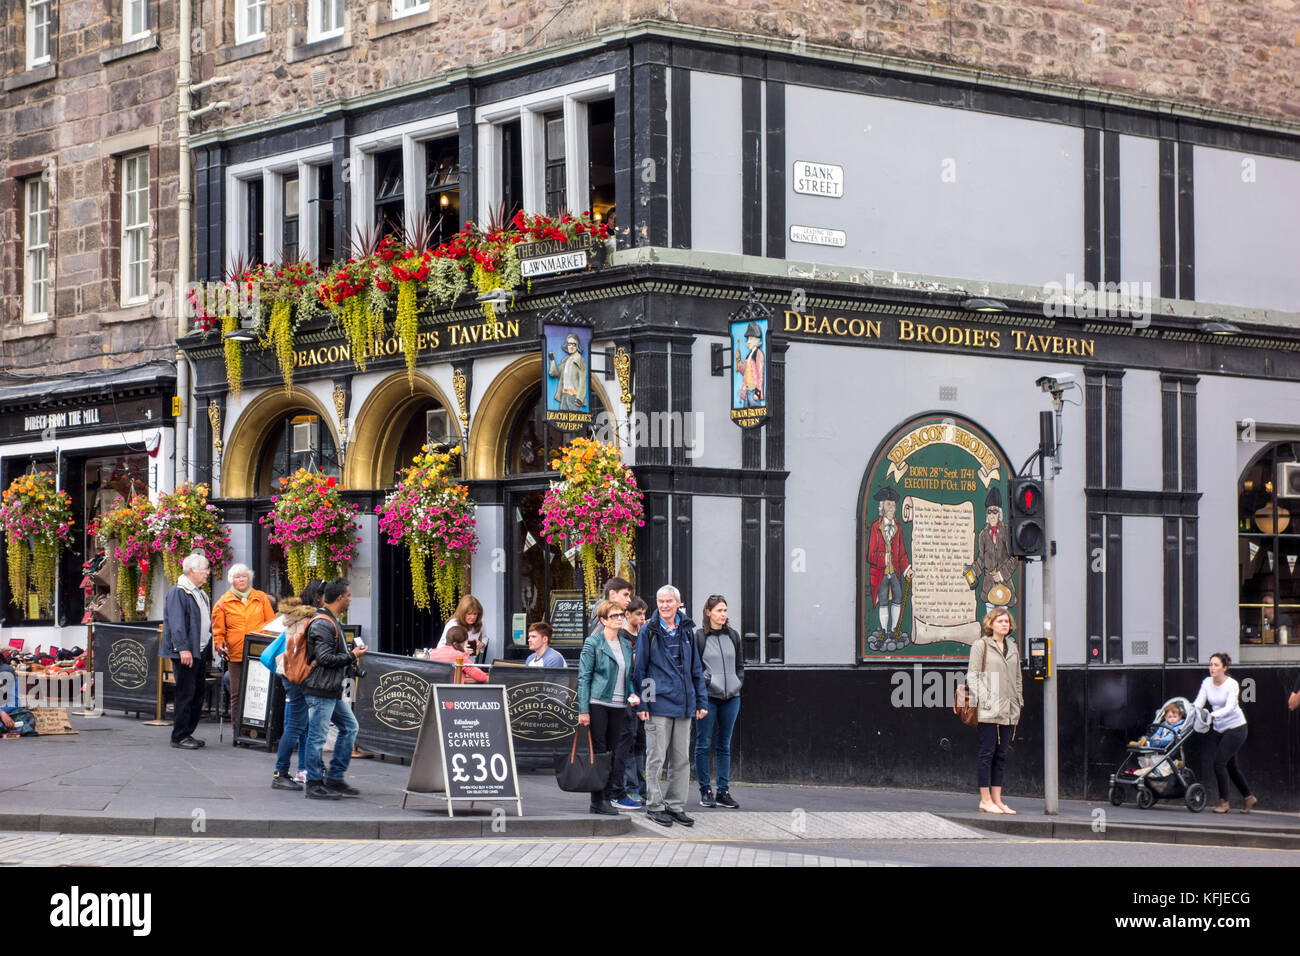 Sign and exterior of Deacon Brodie's Tavern, The Royal Mile, Lawnmarket, Bank Street, Edinburgh, Scotland, UK, - Stock Image